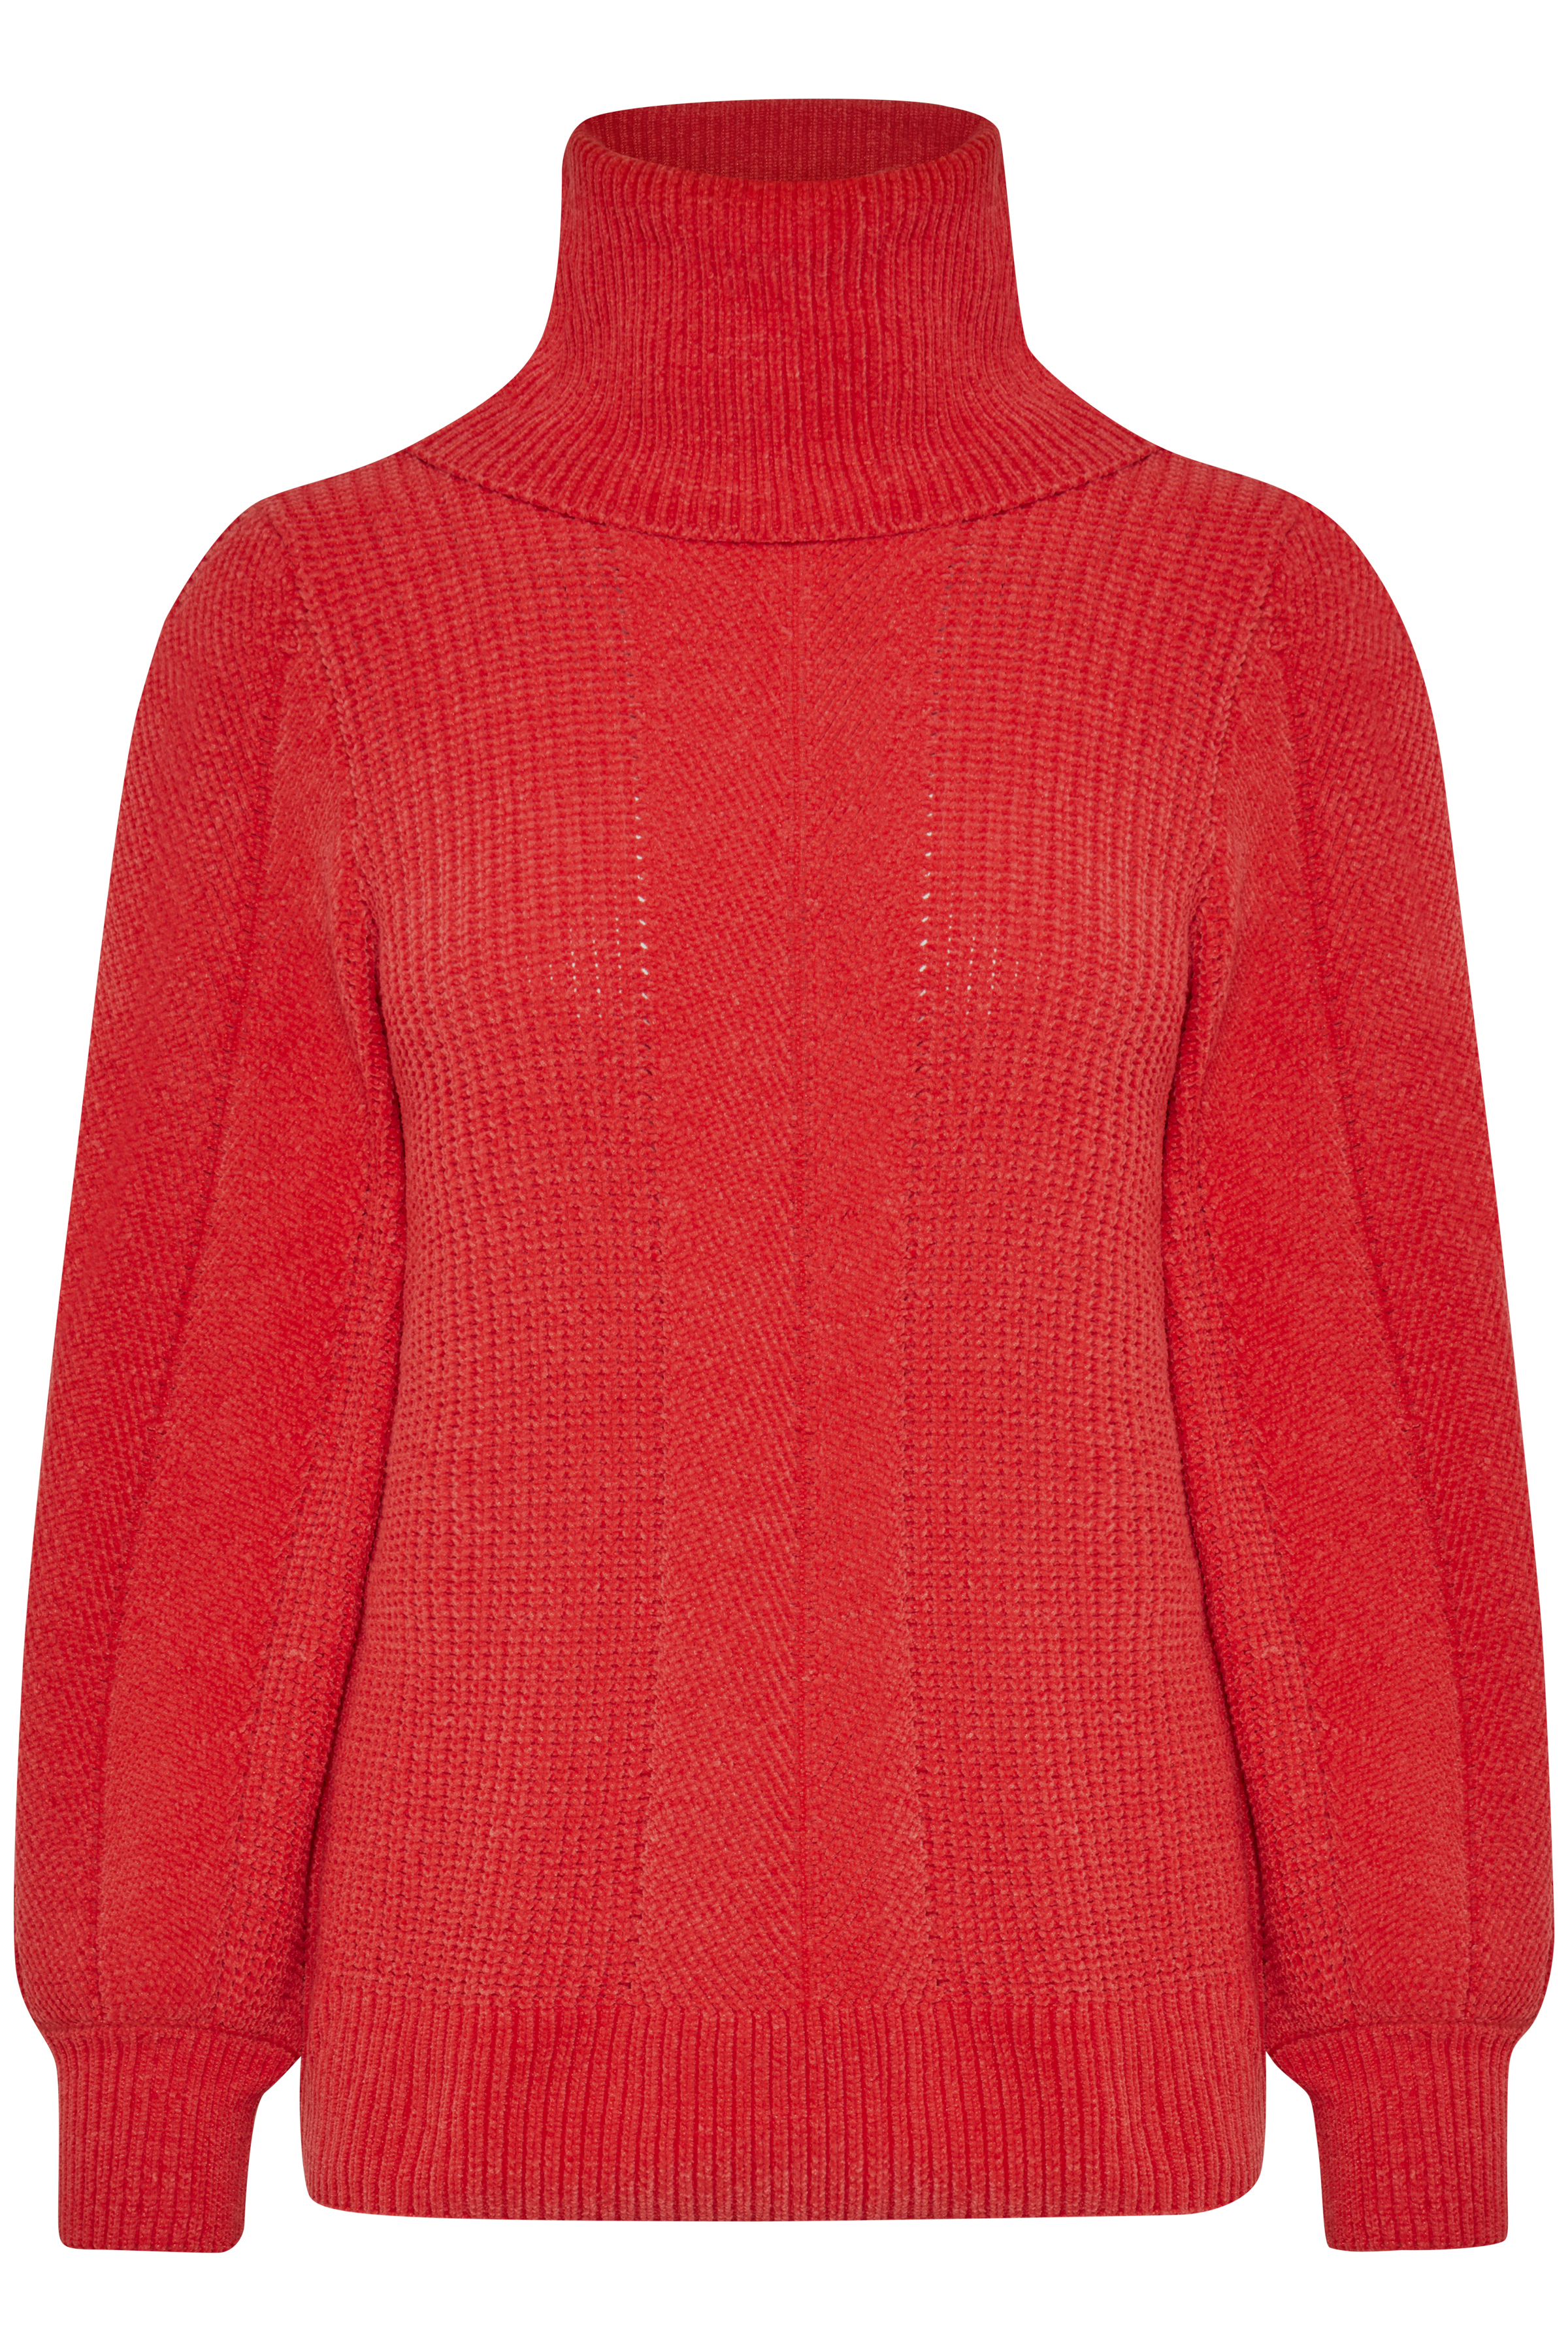 Chinese Red Knitted pullover from b.young – Buy Chinese Red Knitted pullover from size XS-XXL here